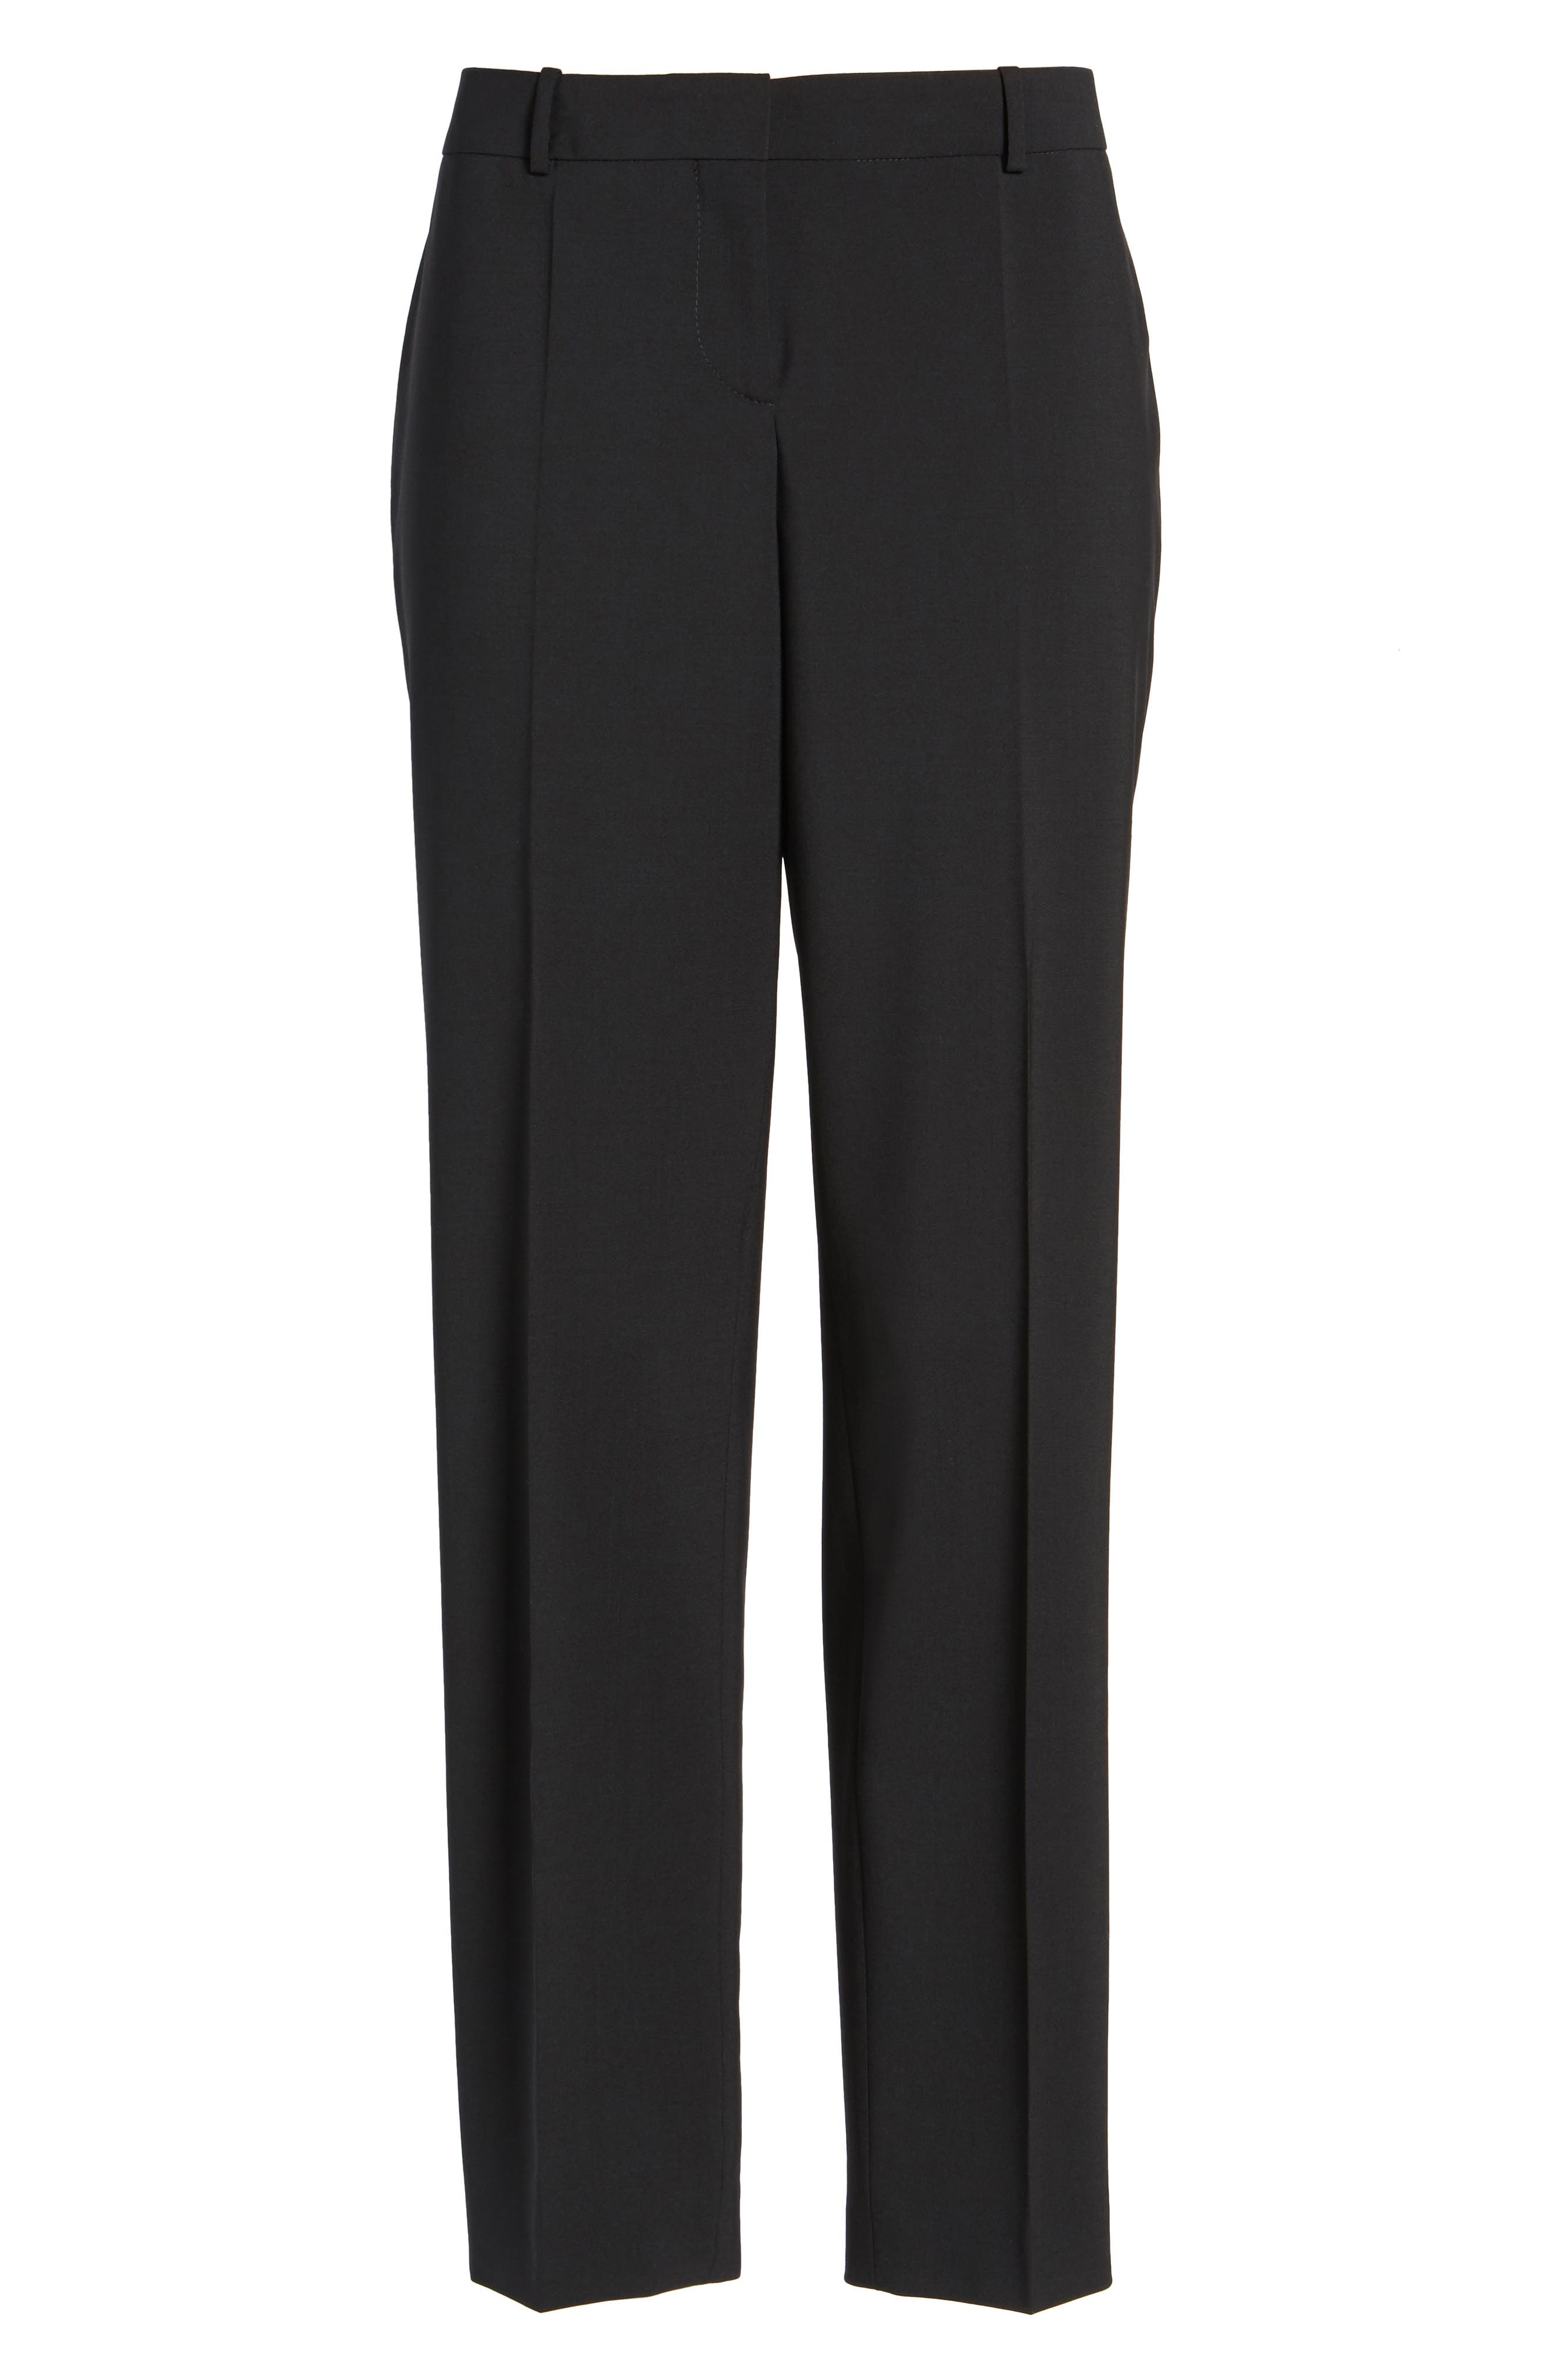 BOSS, Tiluna Tropical Stretch Wool Ankle Trousers, Main thumbnail 1, color, BLACK